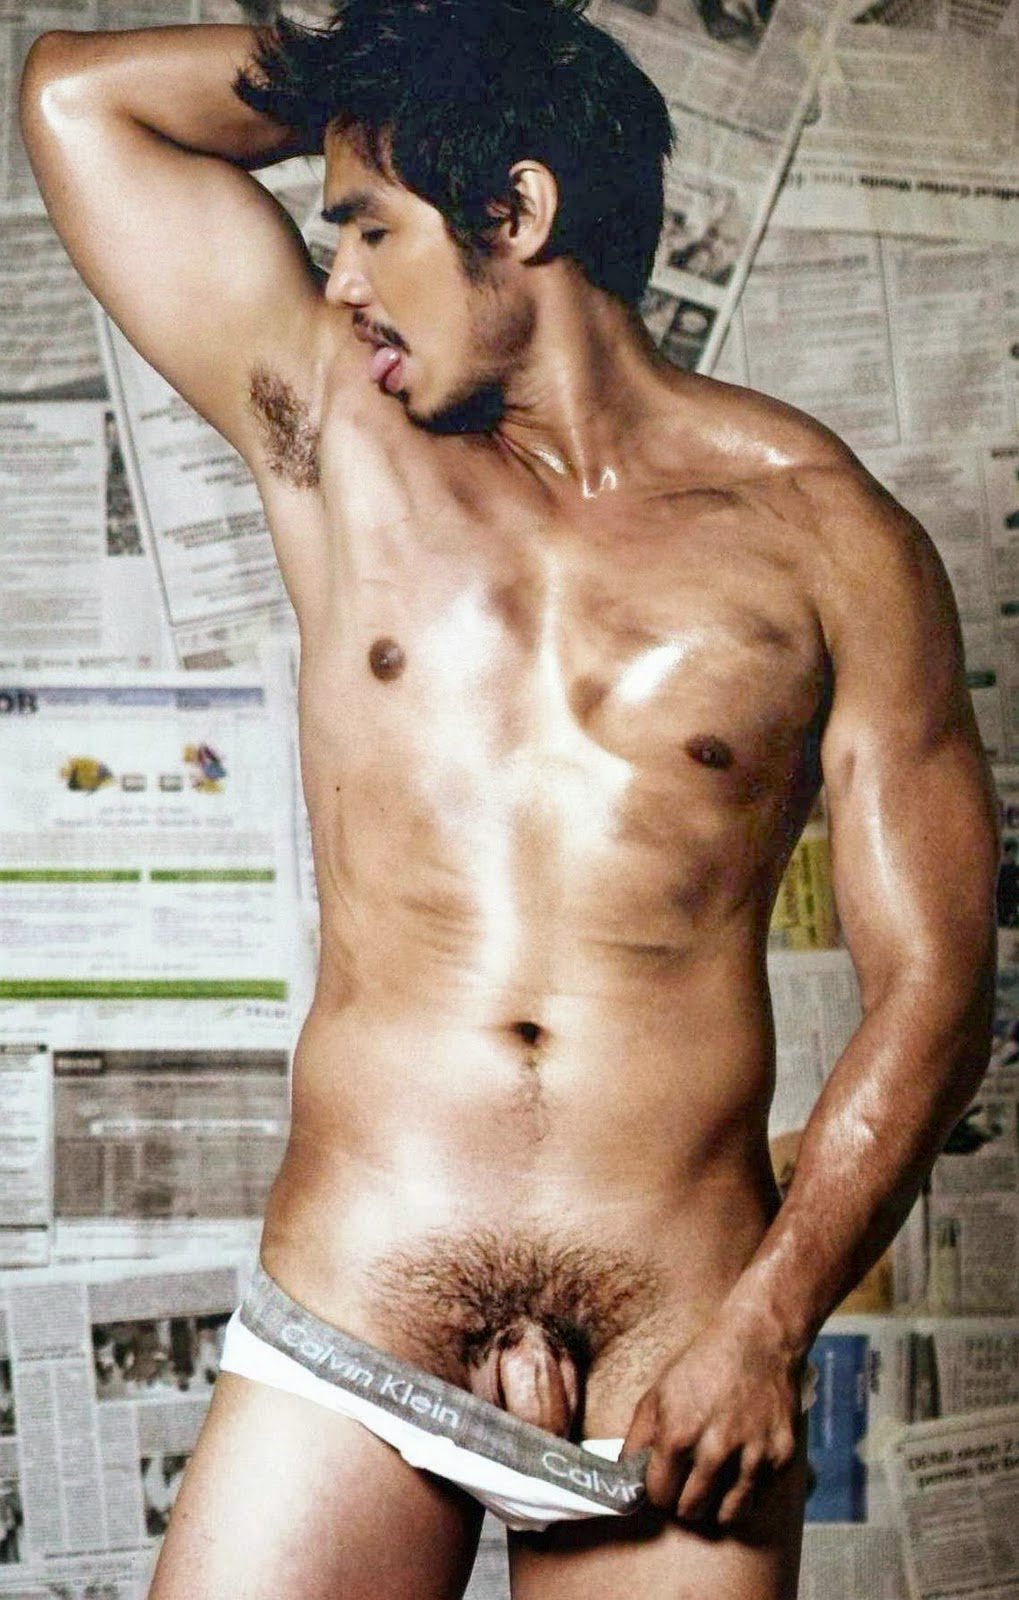 Pinoy handsome celebrity cock gay sky gets